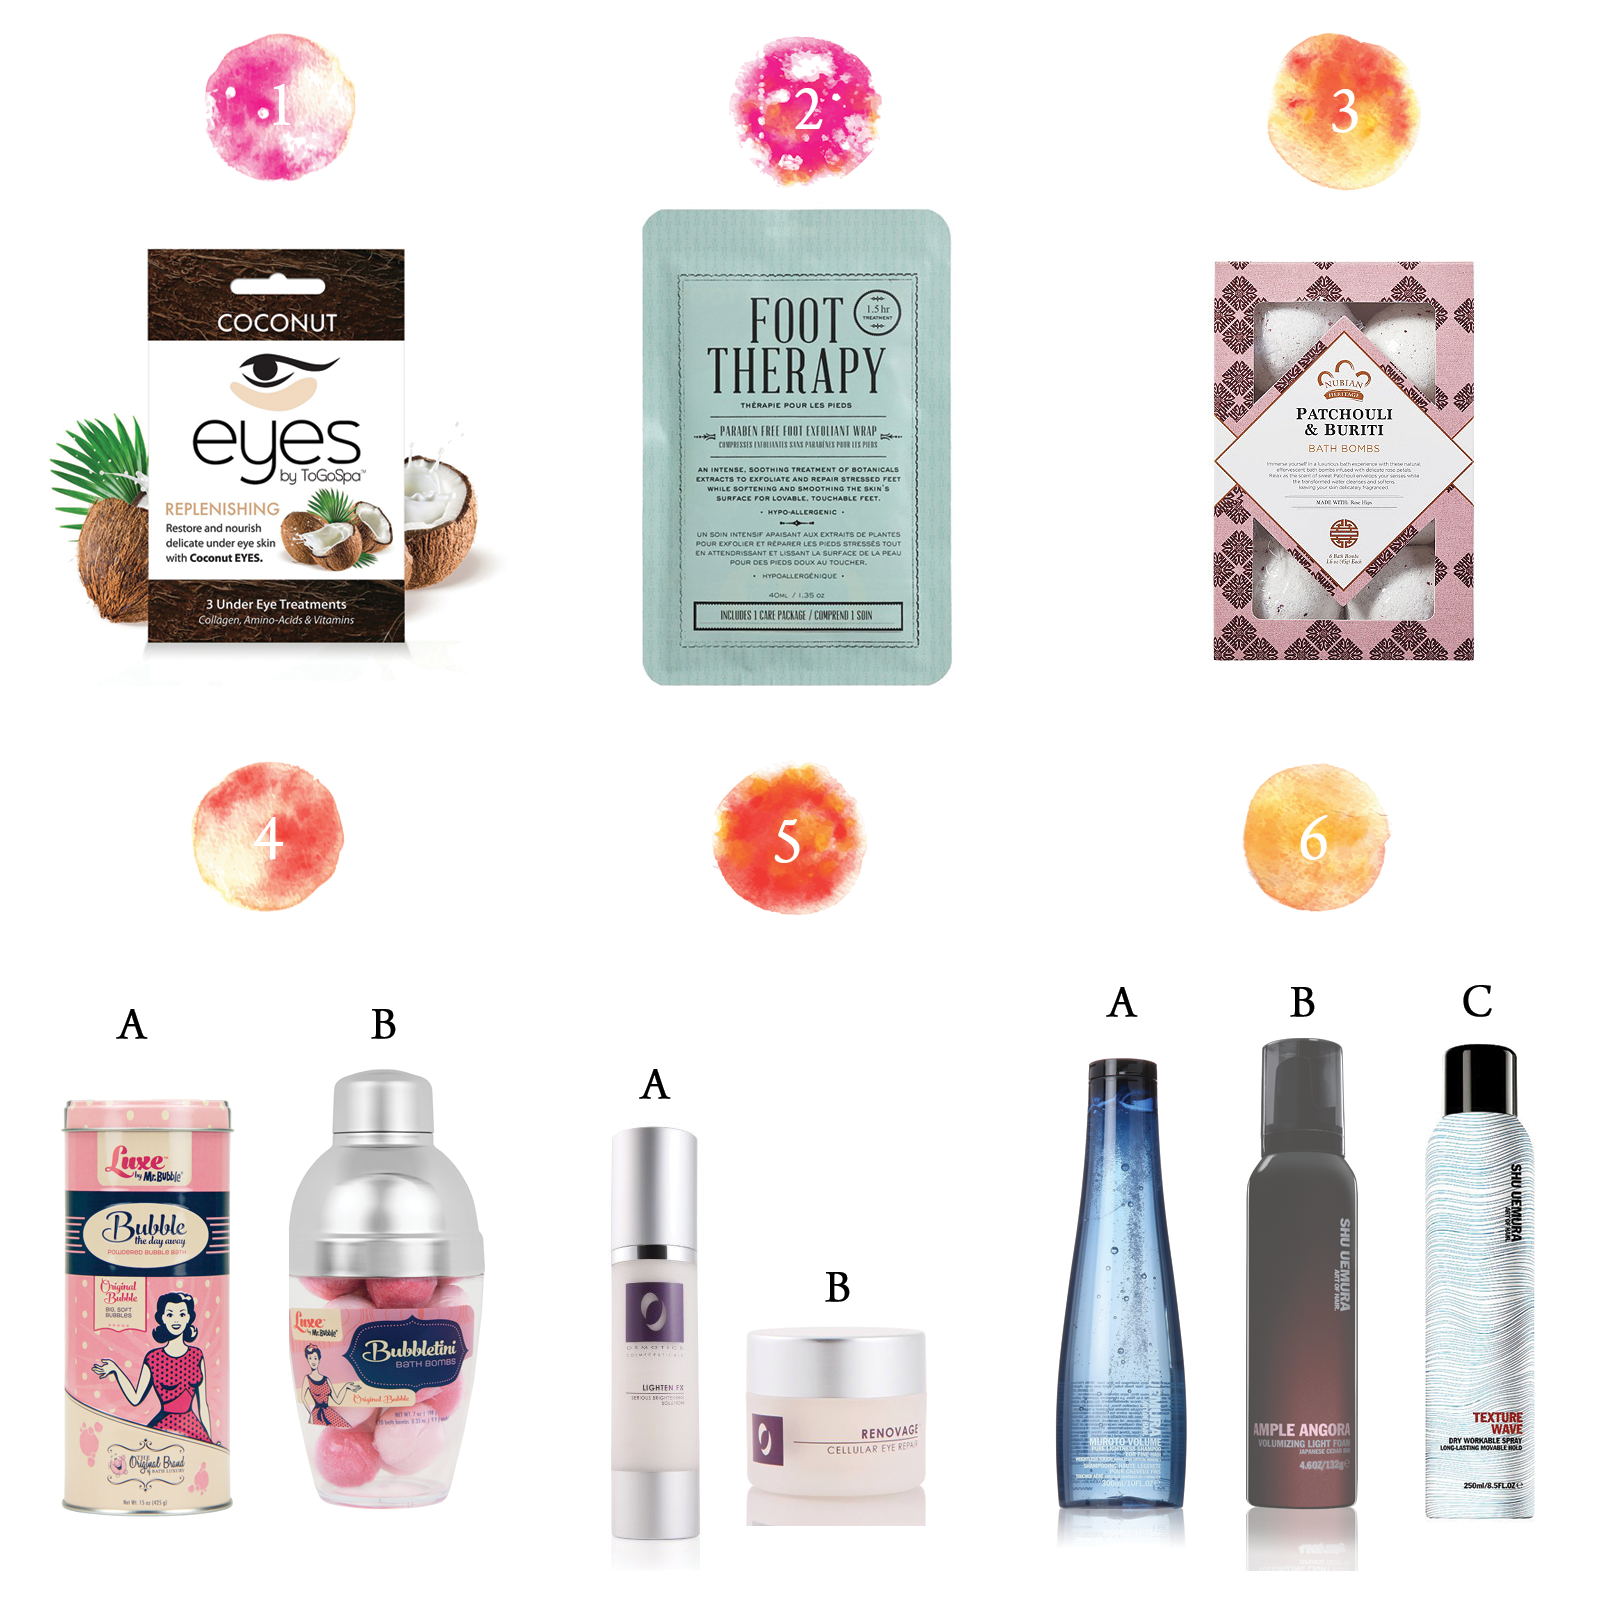 beauty-round-up-beauty-blogger-eyes-luxe-bubble-Kocostar-foot-therapy